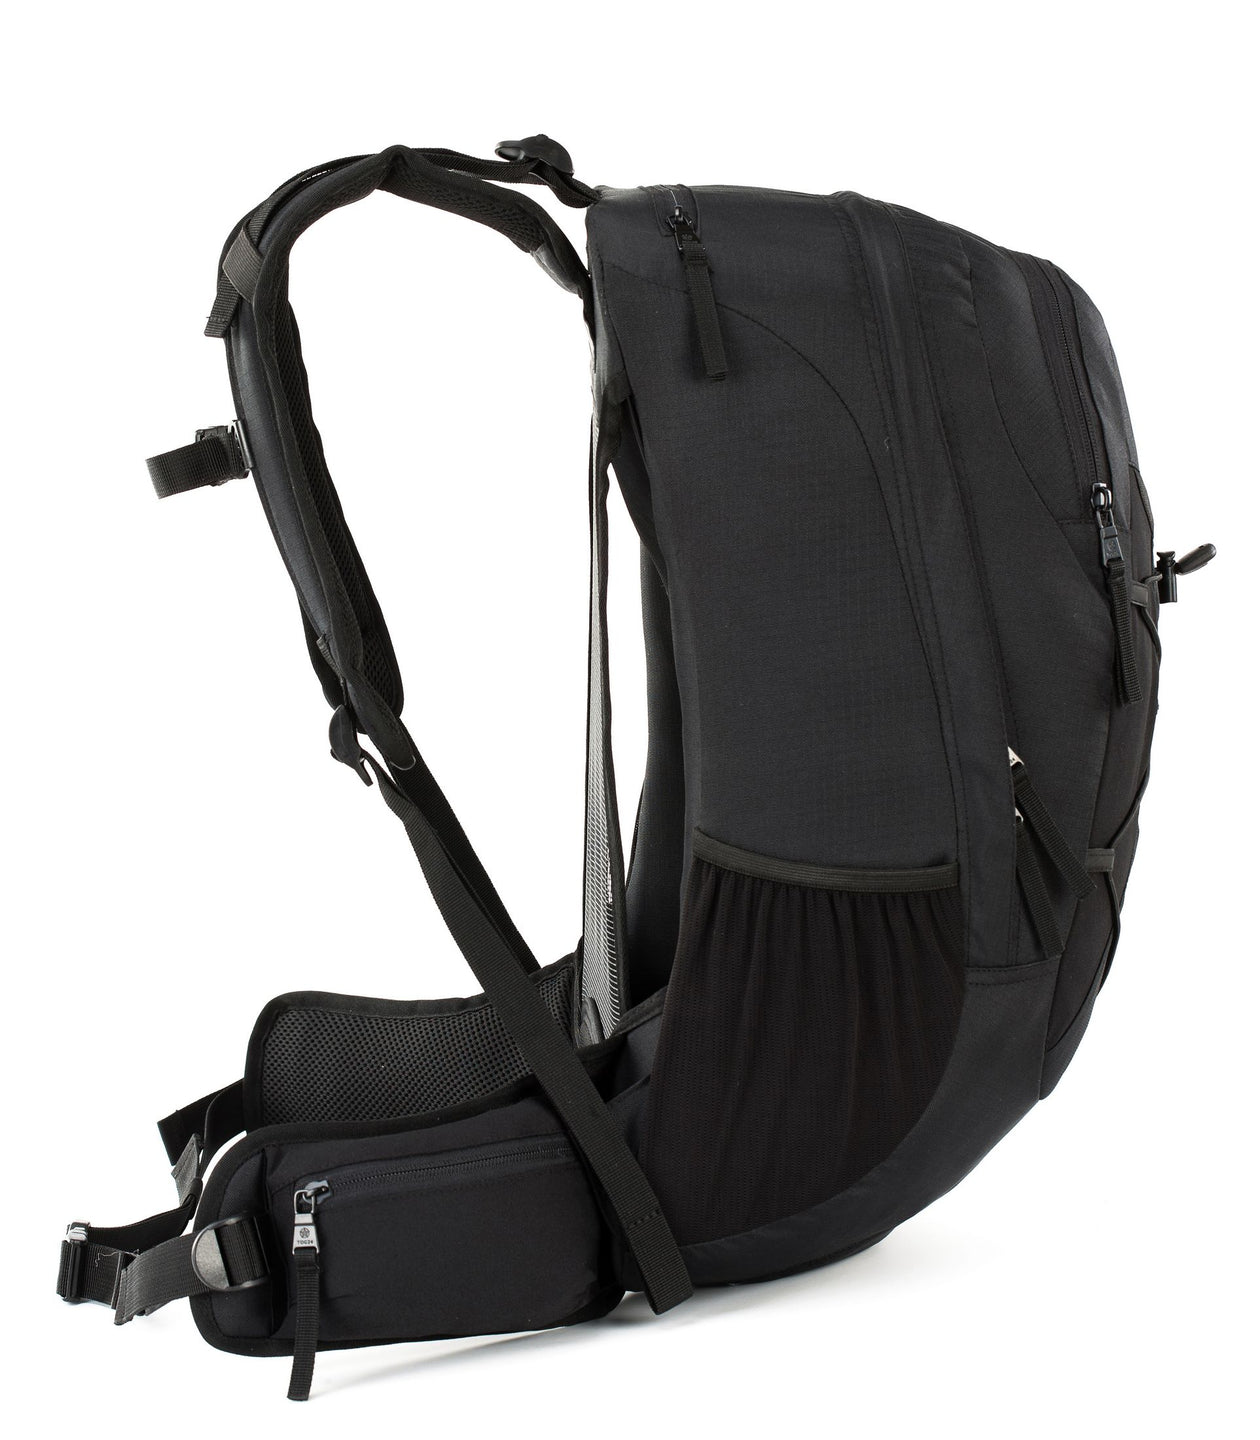 Snaith 35L Backpack - Black image 4